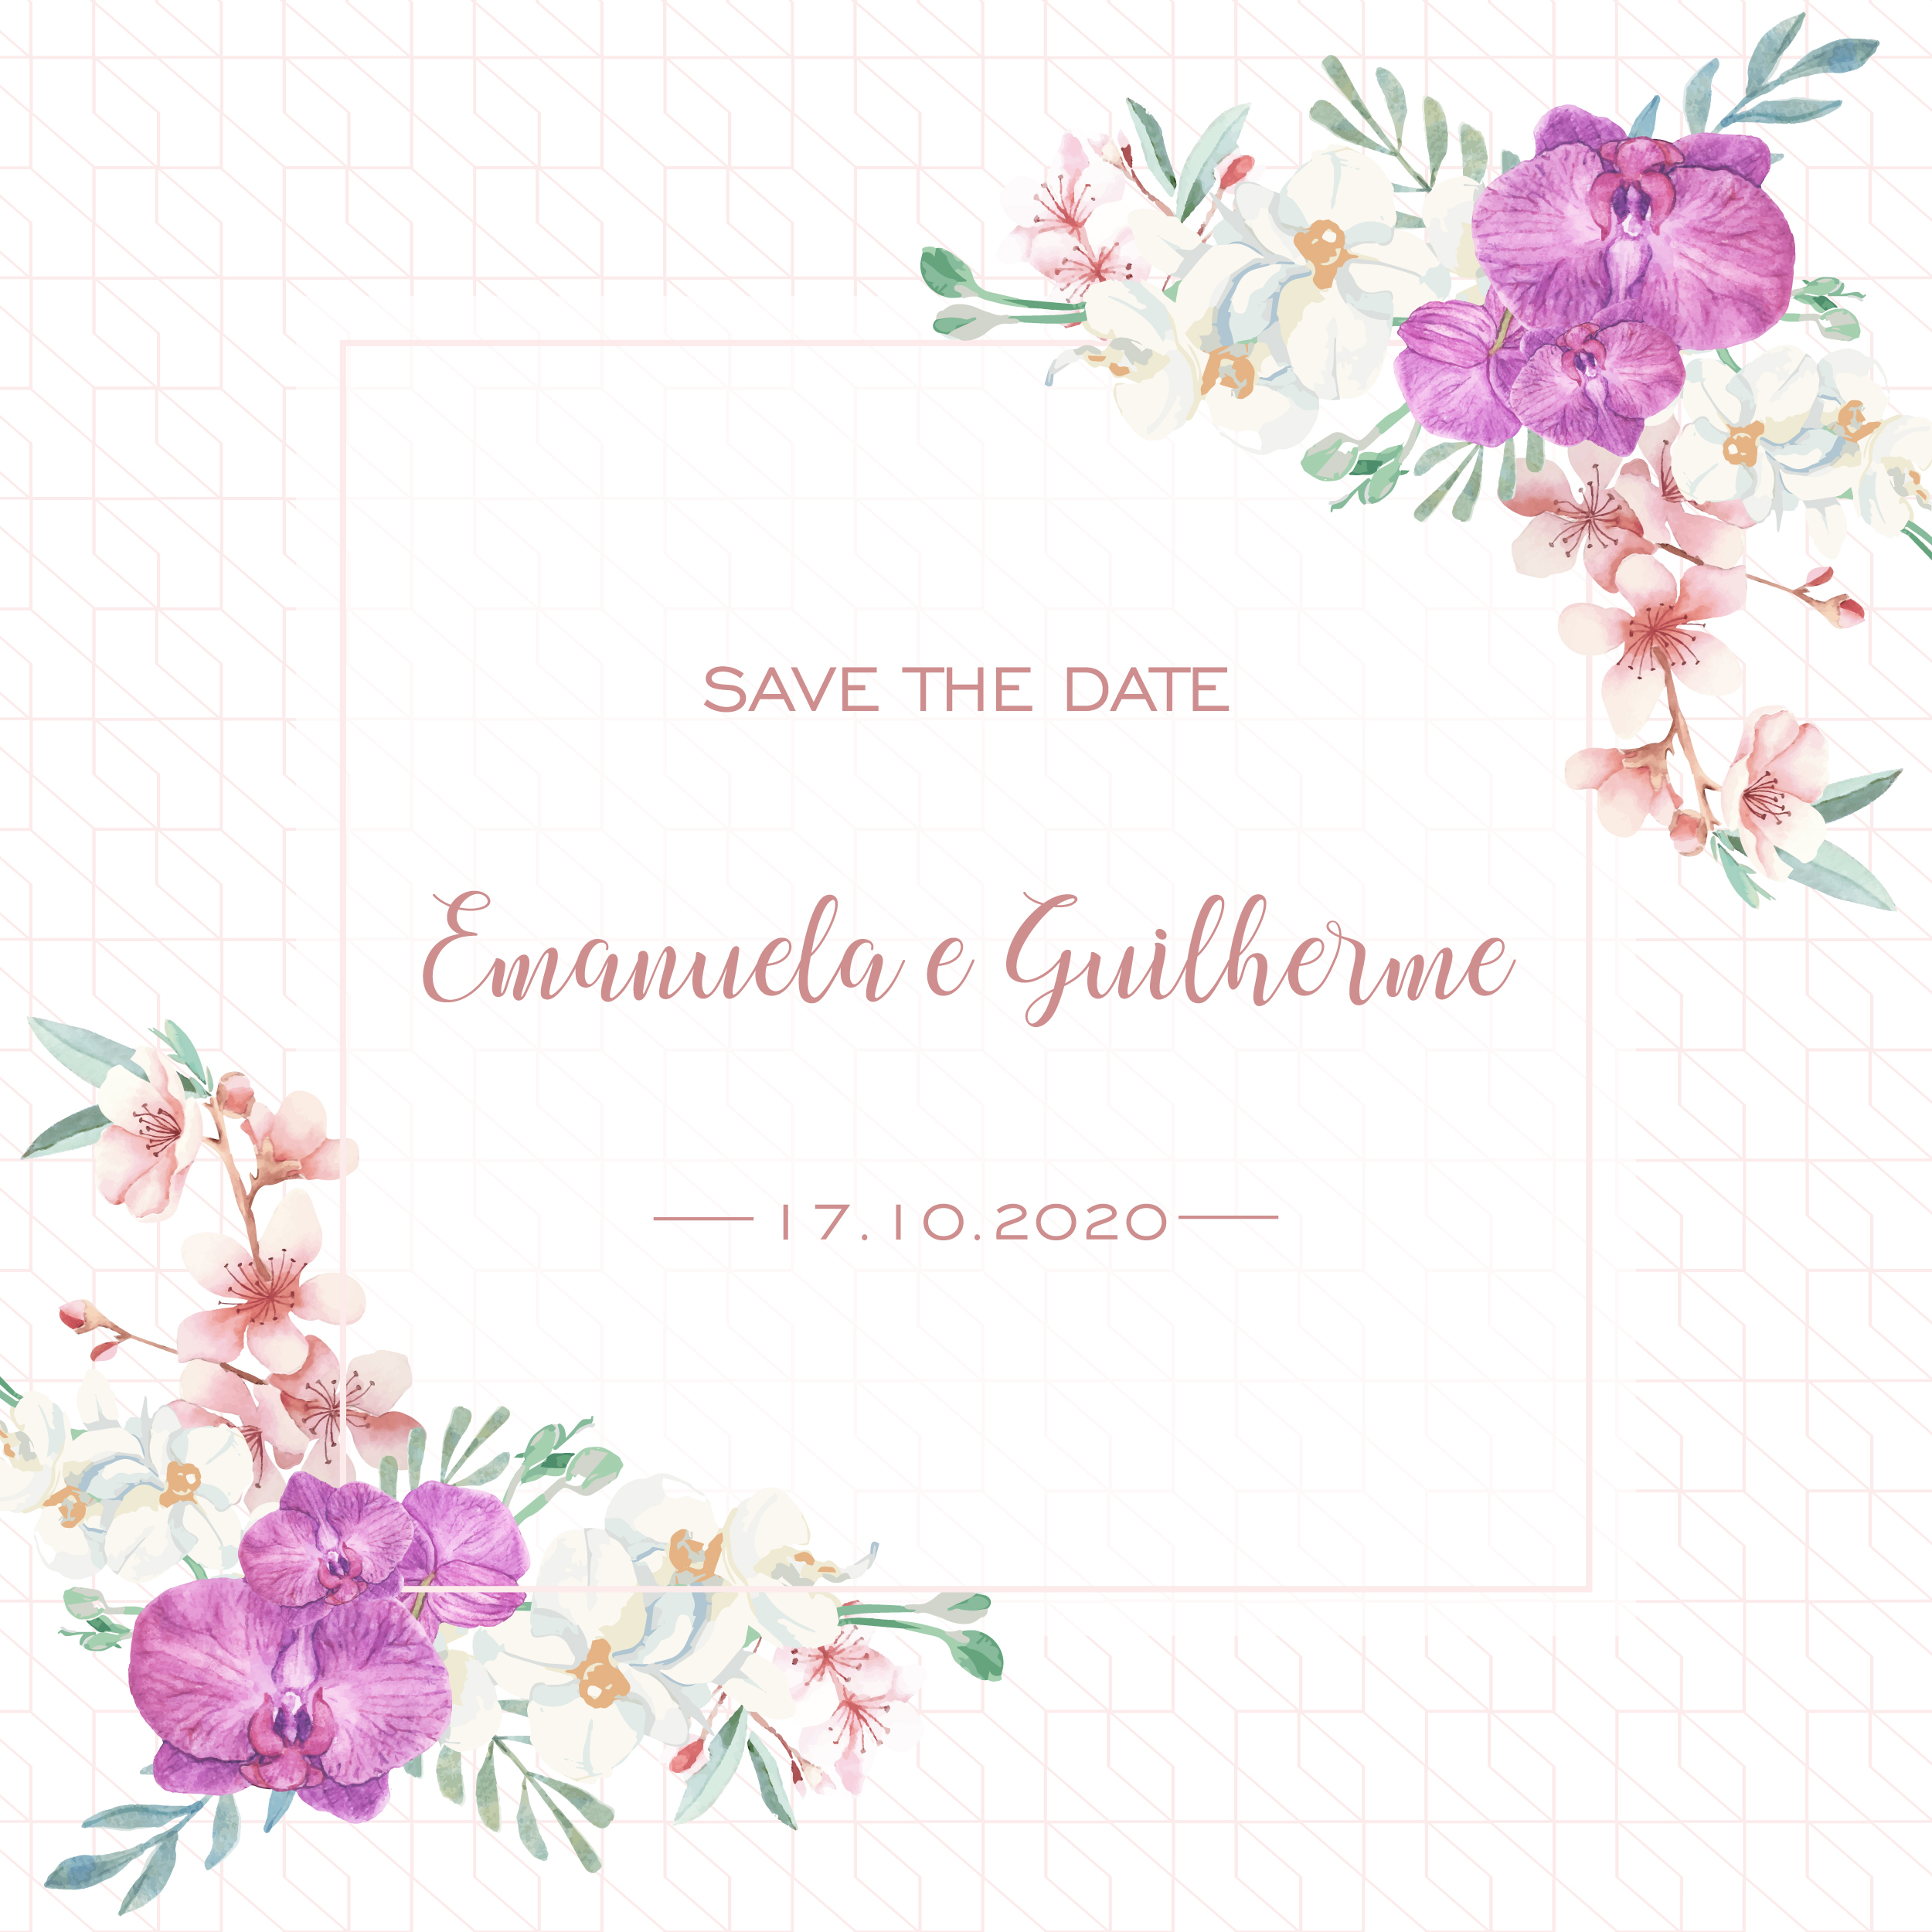 Save the date Emanuela e Guilherme -